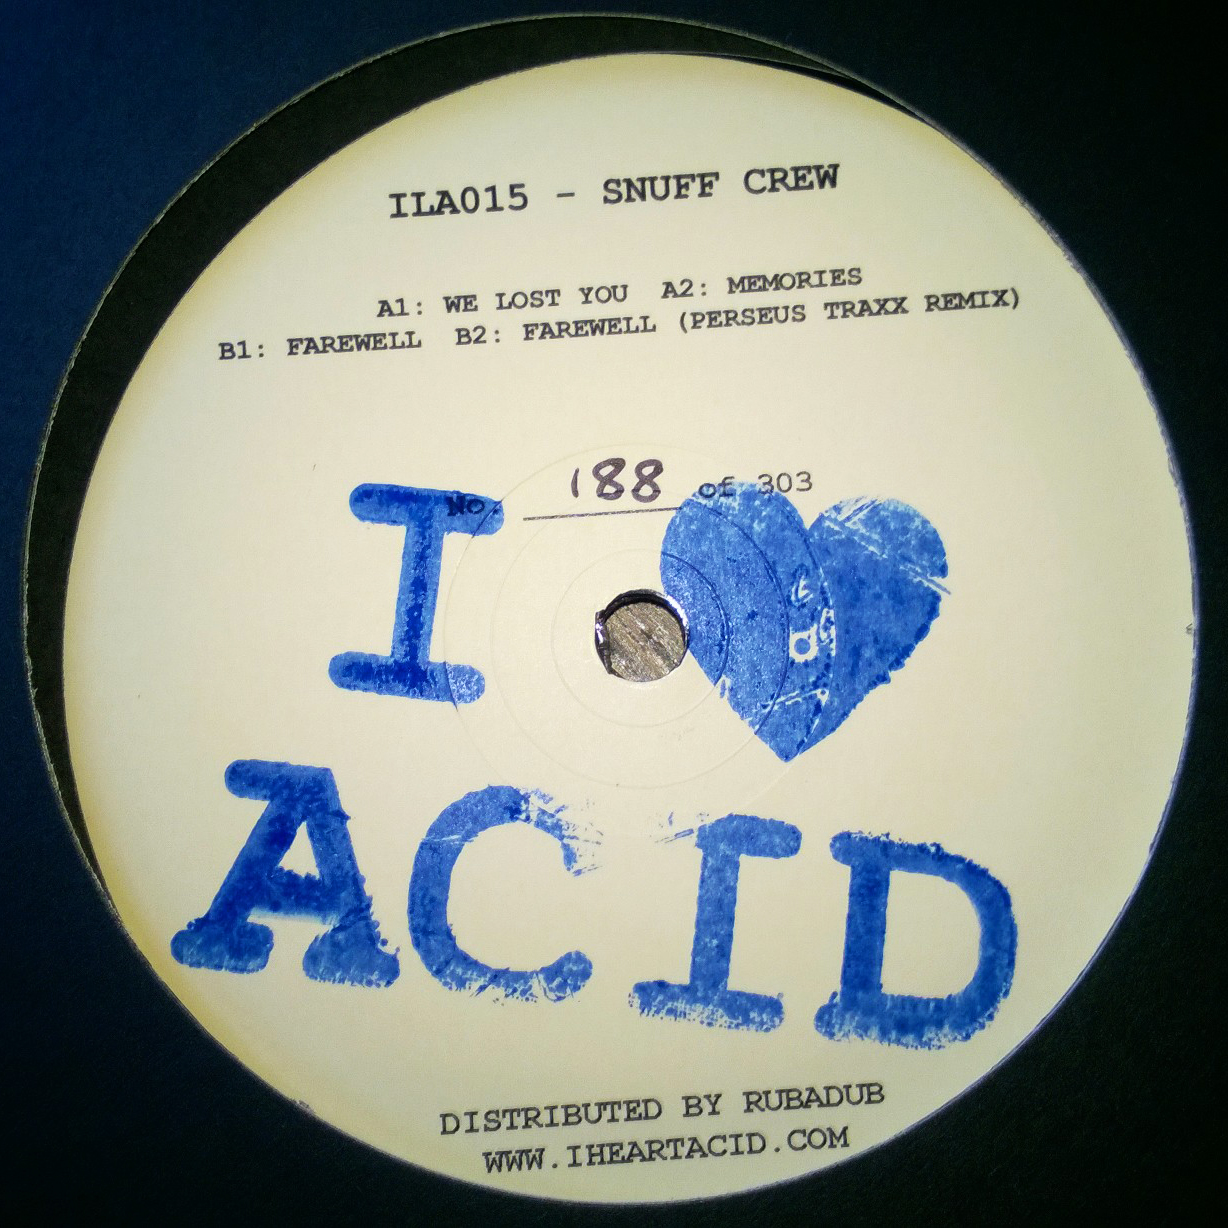 Snuff Crew/I LOVE ACID 015 12""